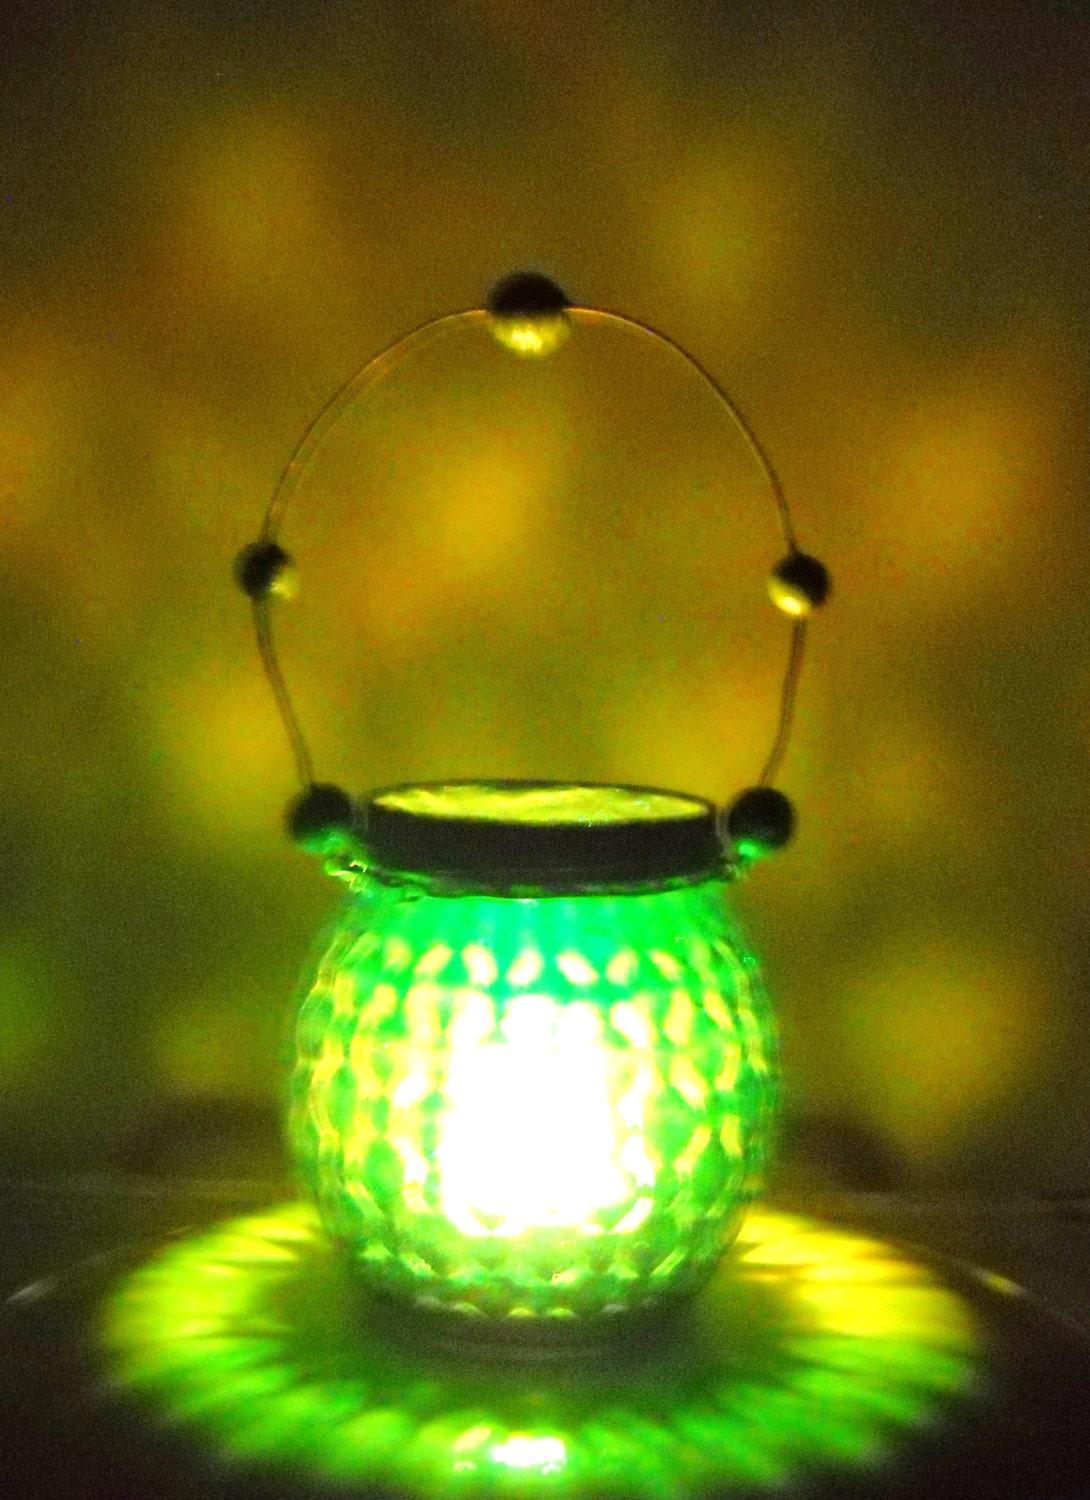 SPRING SALE - Hanging green lantern  - beaded wire handle - made from a pretty jelly jar - for LED candle - ChickenJungle